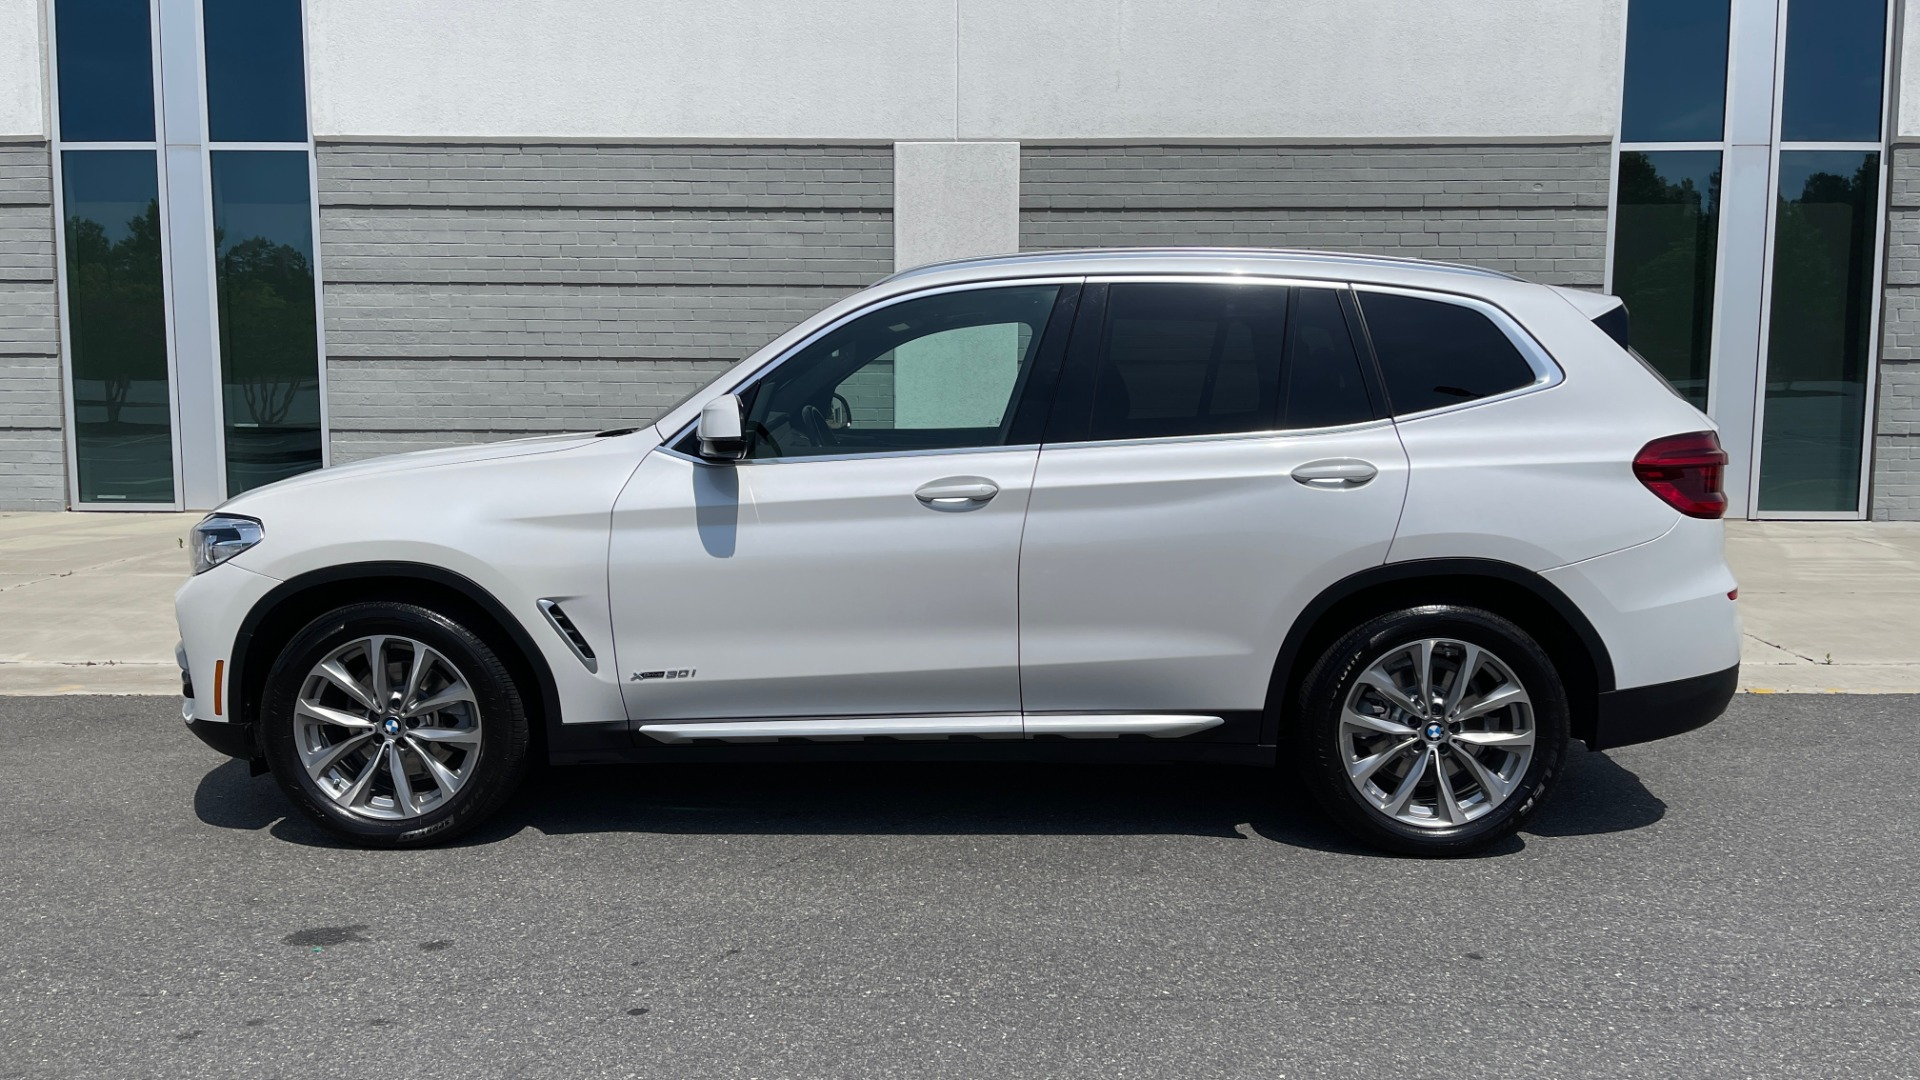 Used 2018 BMW X3 XDRIVE30I PREMIUM / NAV / DRVR ASST / CONV PKG / SUNROOF / REARVIEW for sale $32,695 at Formula Imports in Charlotte NC 28227 5